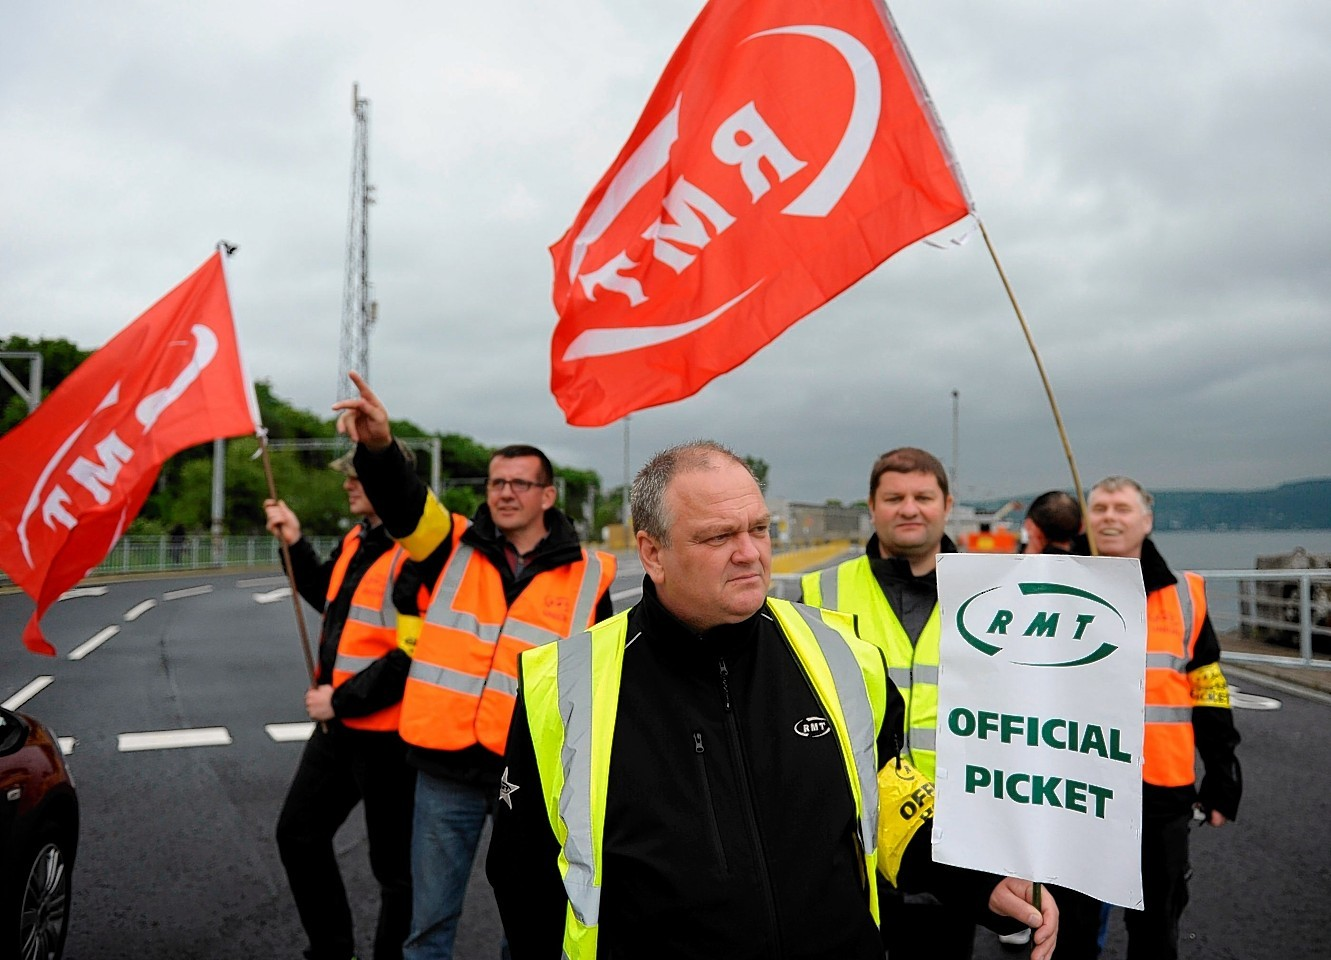 The RMT picket line outside the Calmac headquarters in Gourock